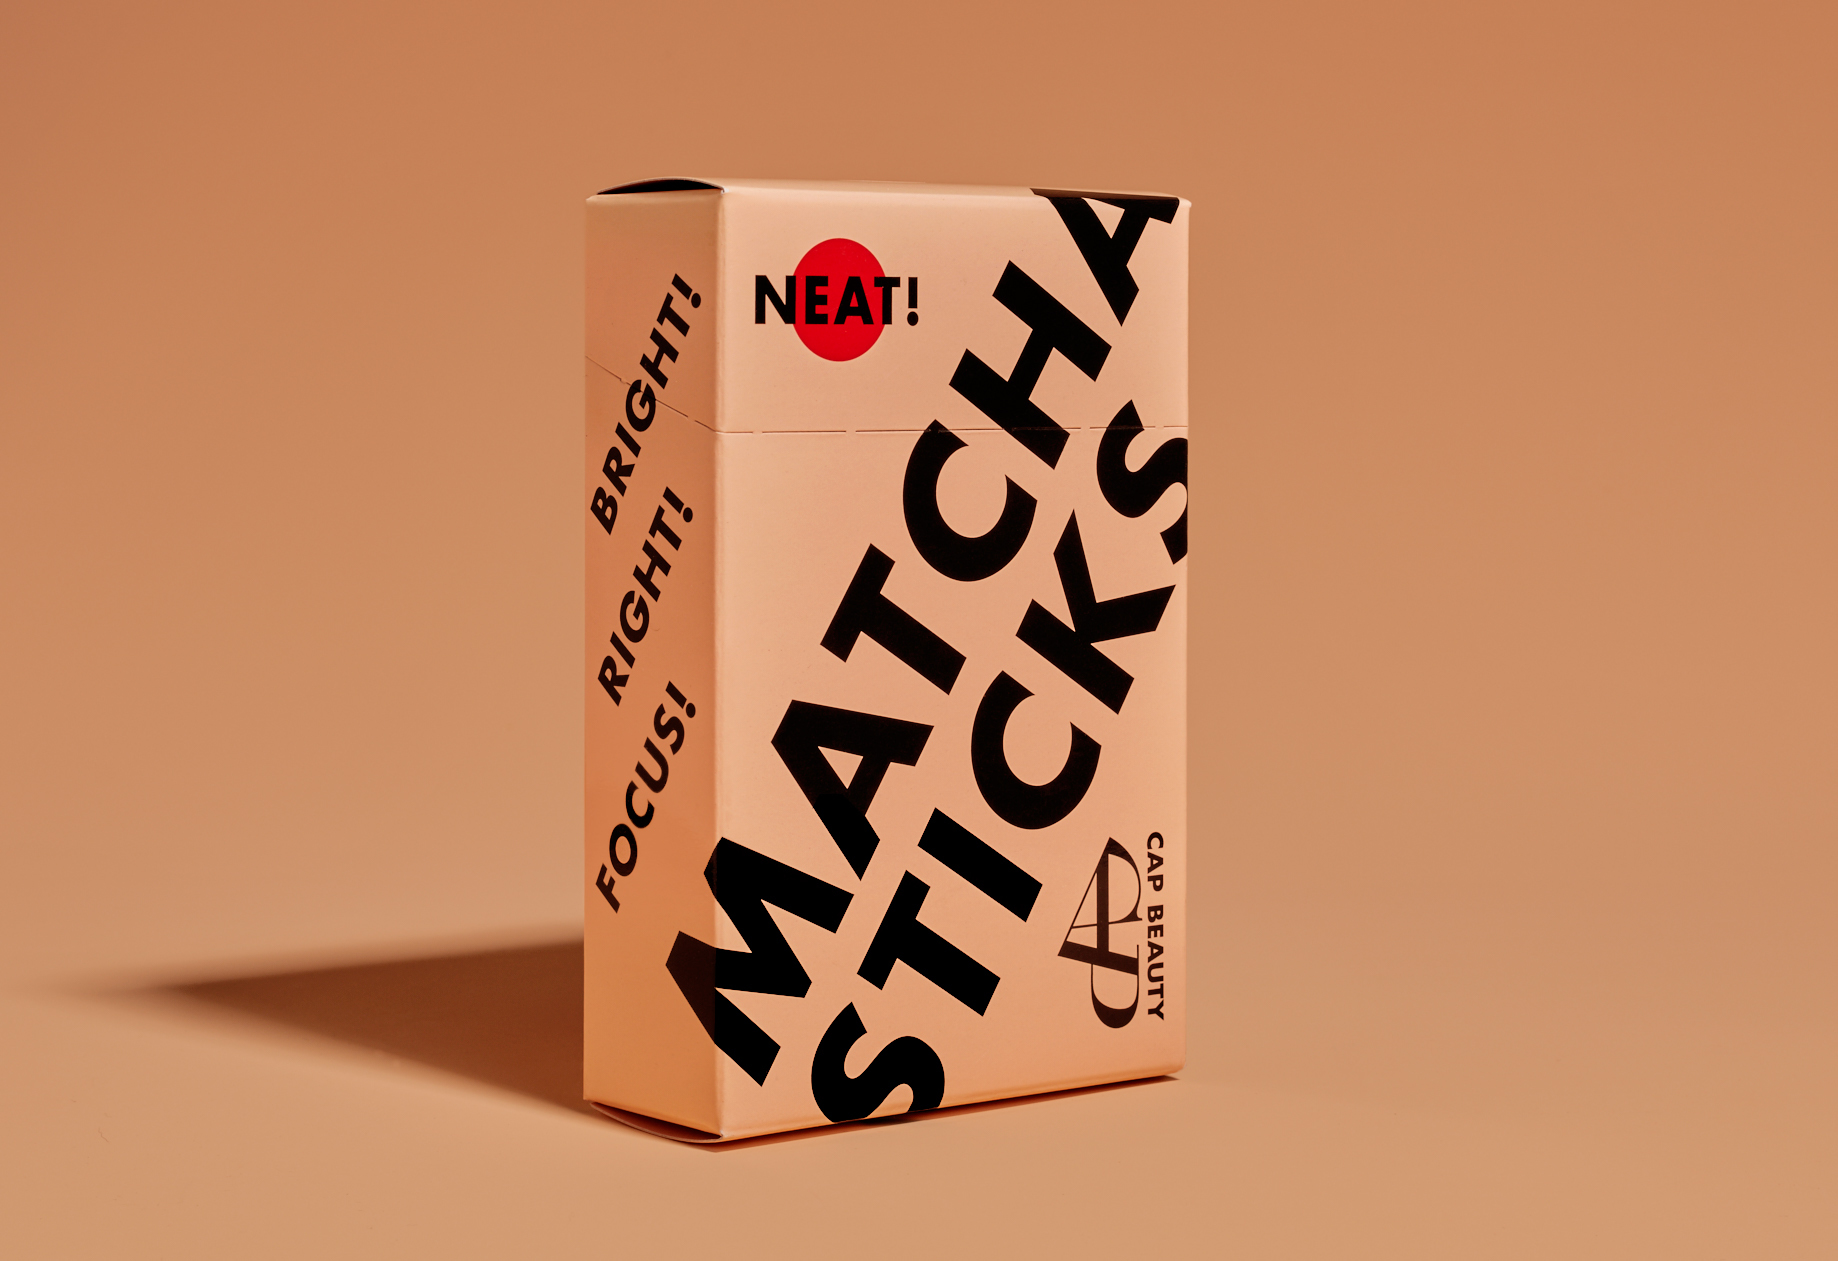 Matcha-Sticks-Tea-box.jpg?mtime=20181126092540#asset:103853